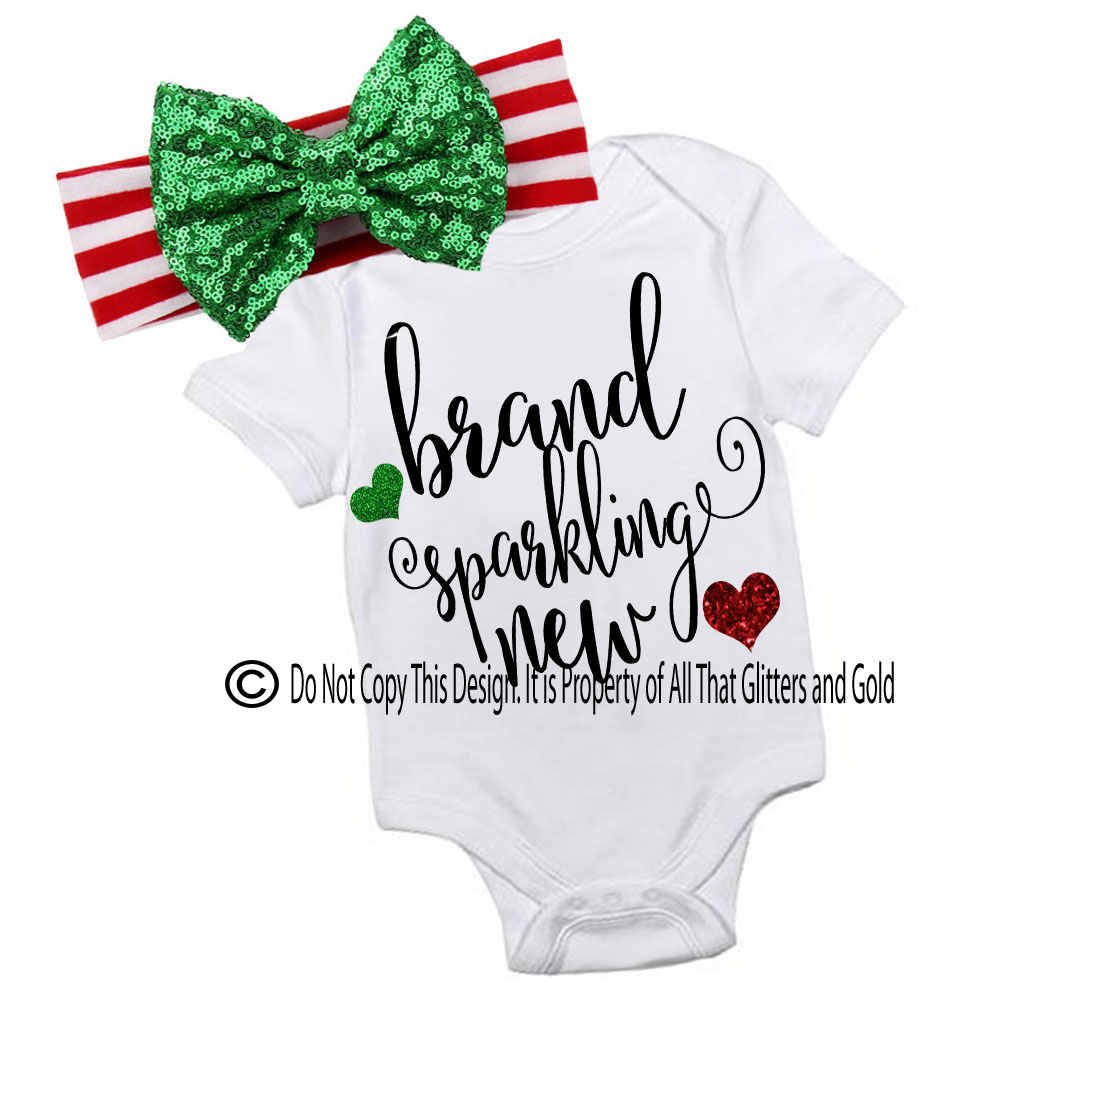 Glitter Brand Sparkly New Handmade Christmas Outfit For Baby Girls